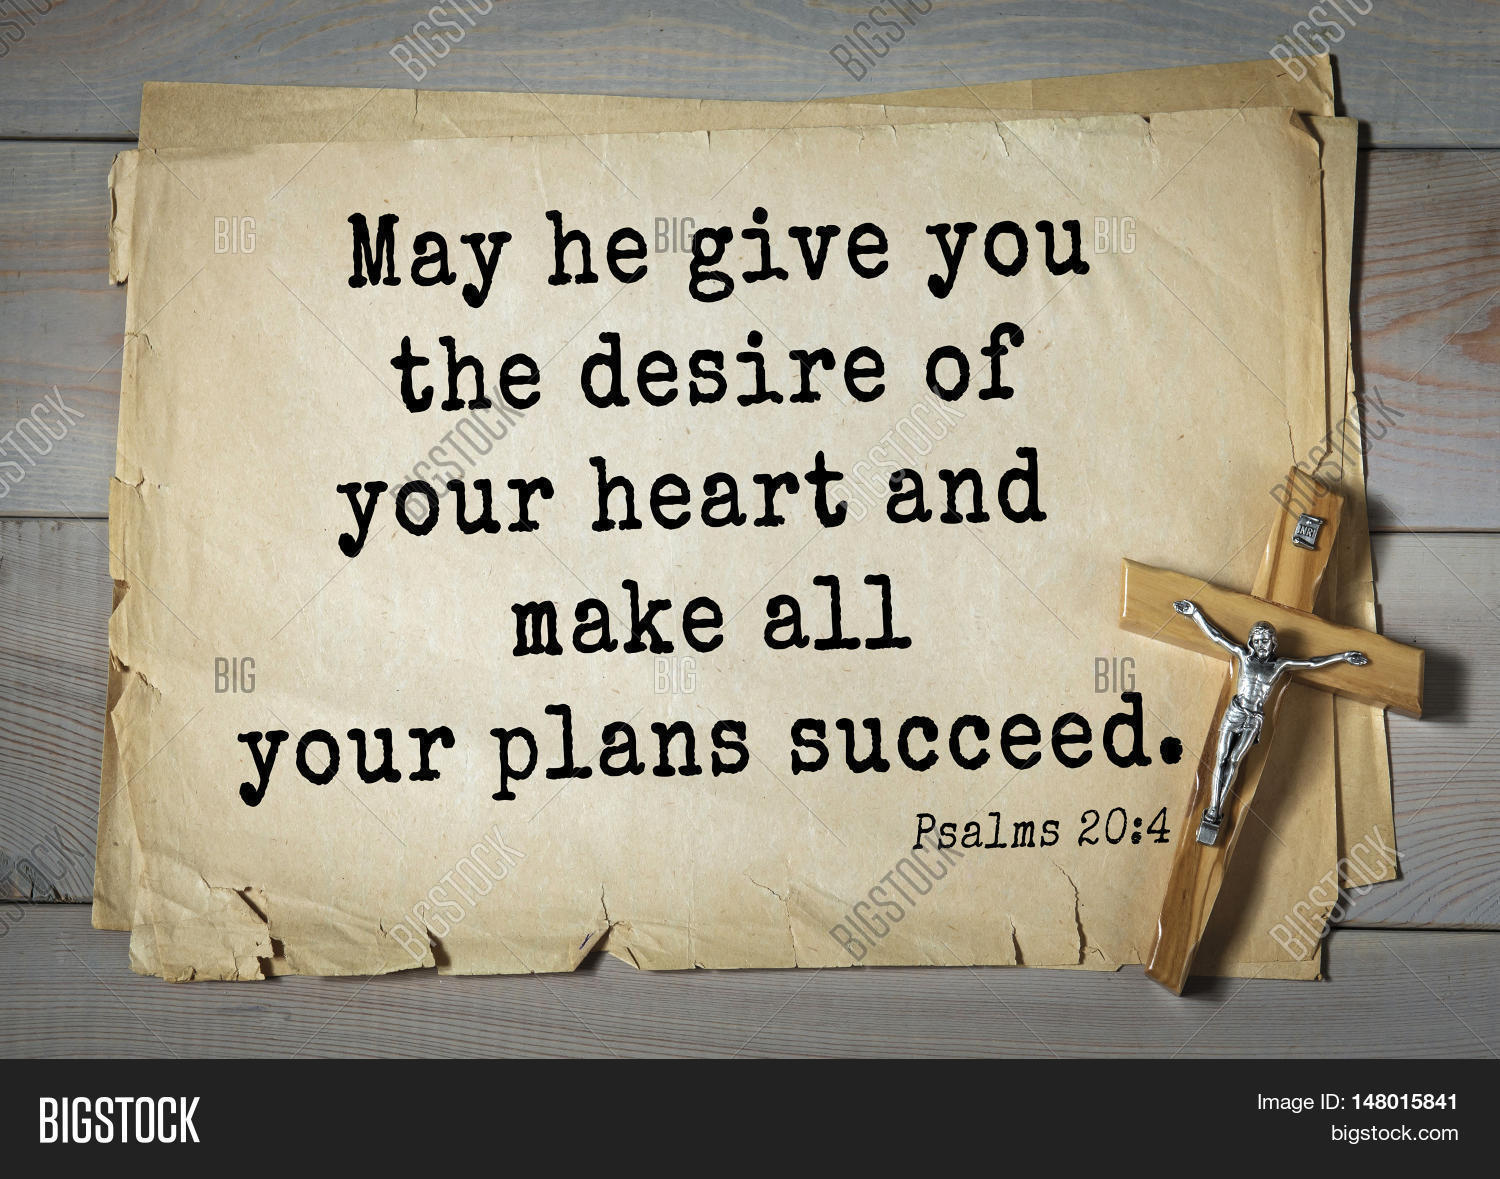 Top 1000 bible verses image photo free trial bigstock bible verses from psalms may he give you the desire of freerunsca Image collections